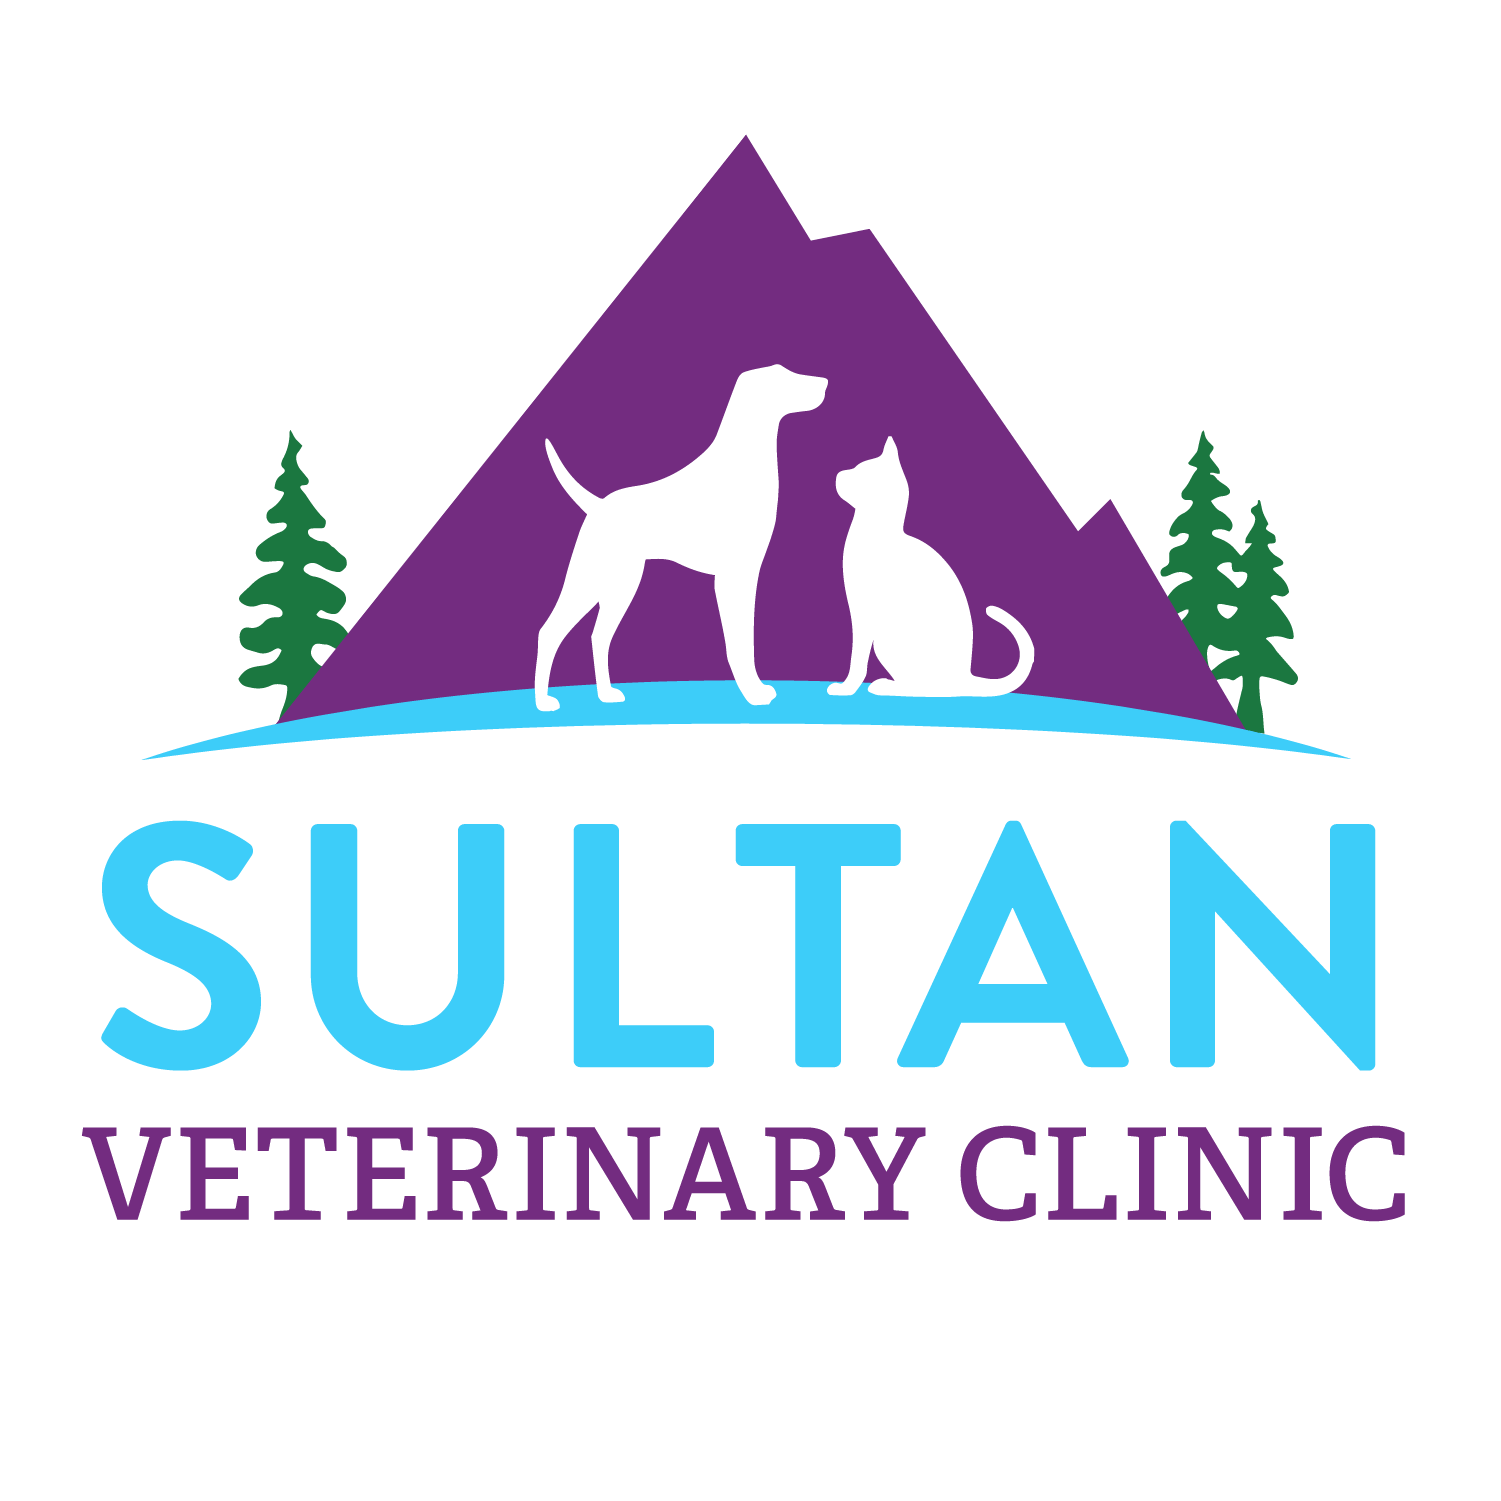 Sultan Veterinary Clinic